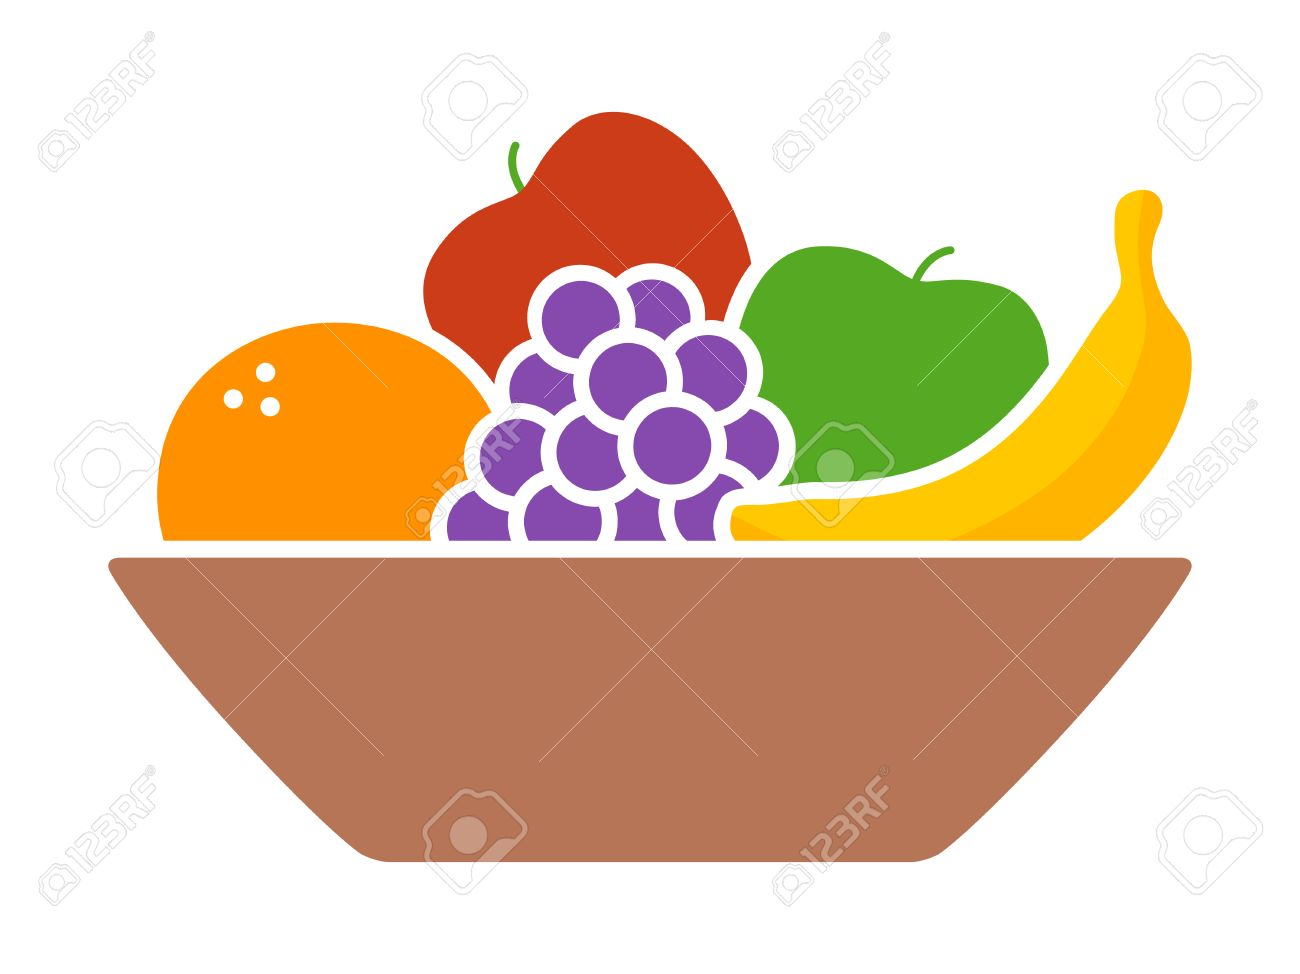 Bowl of fruit / fruits with orange, banana, grapes and apples flat colorful icon for apps and websites - 68703490